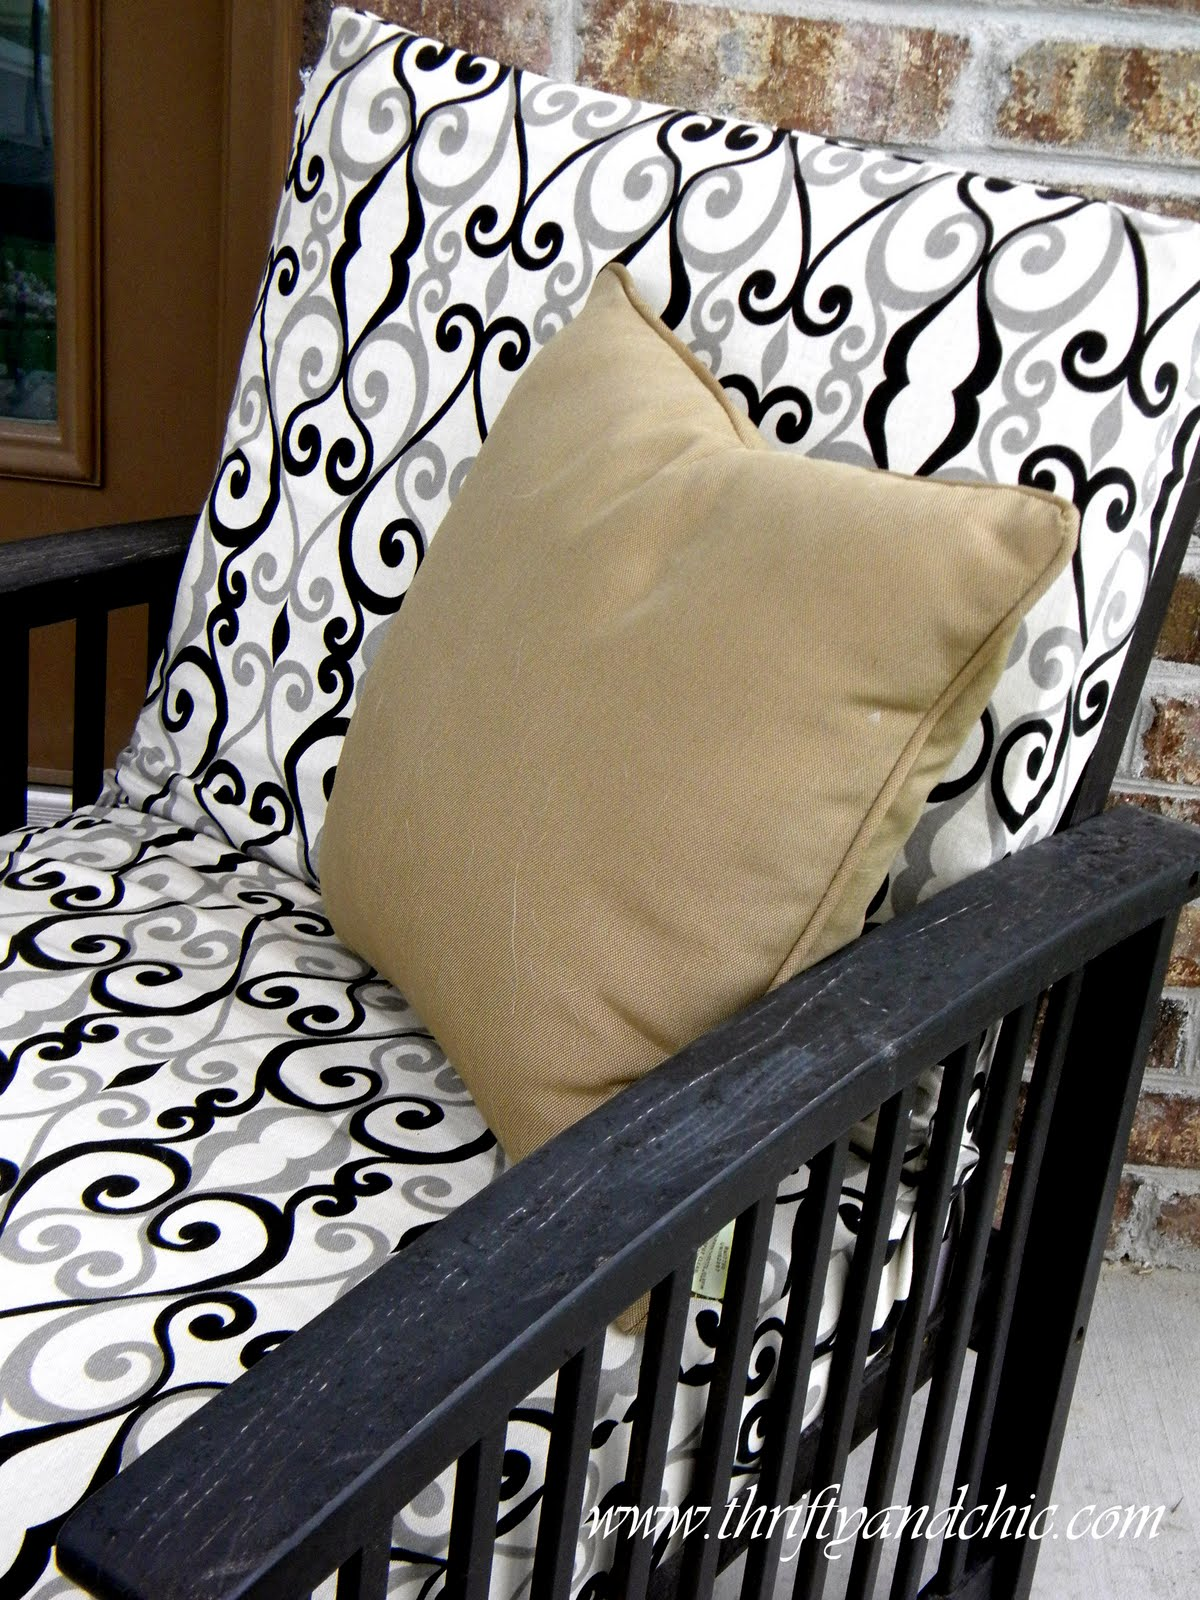 diy outdoor chair cushion covers ja spa thrifty and chic projects home decor